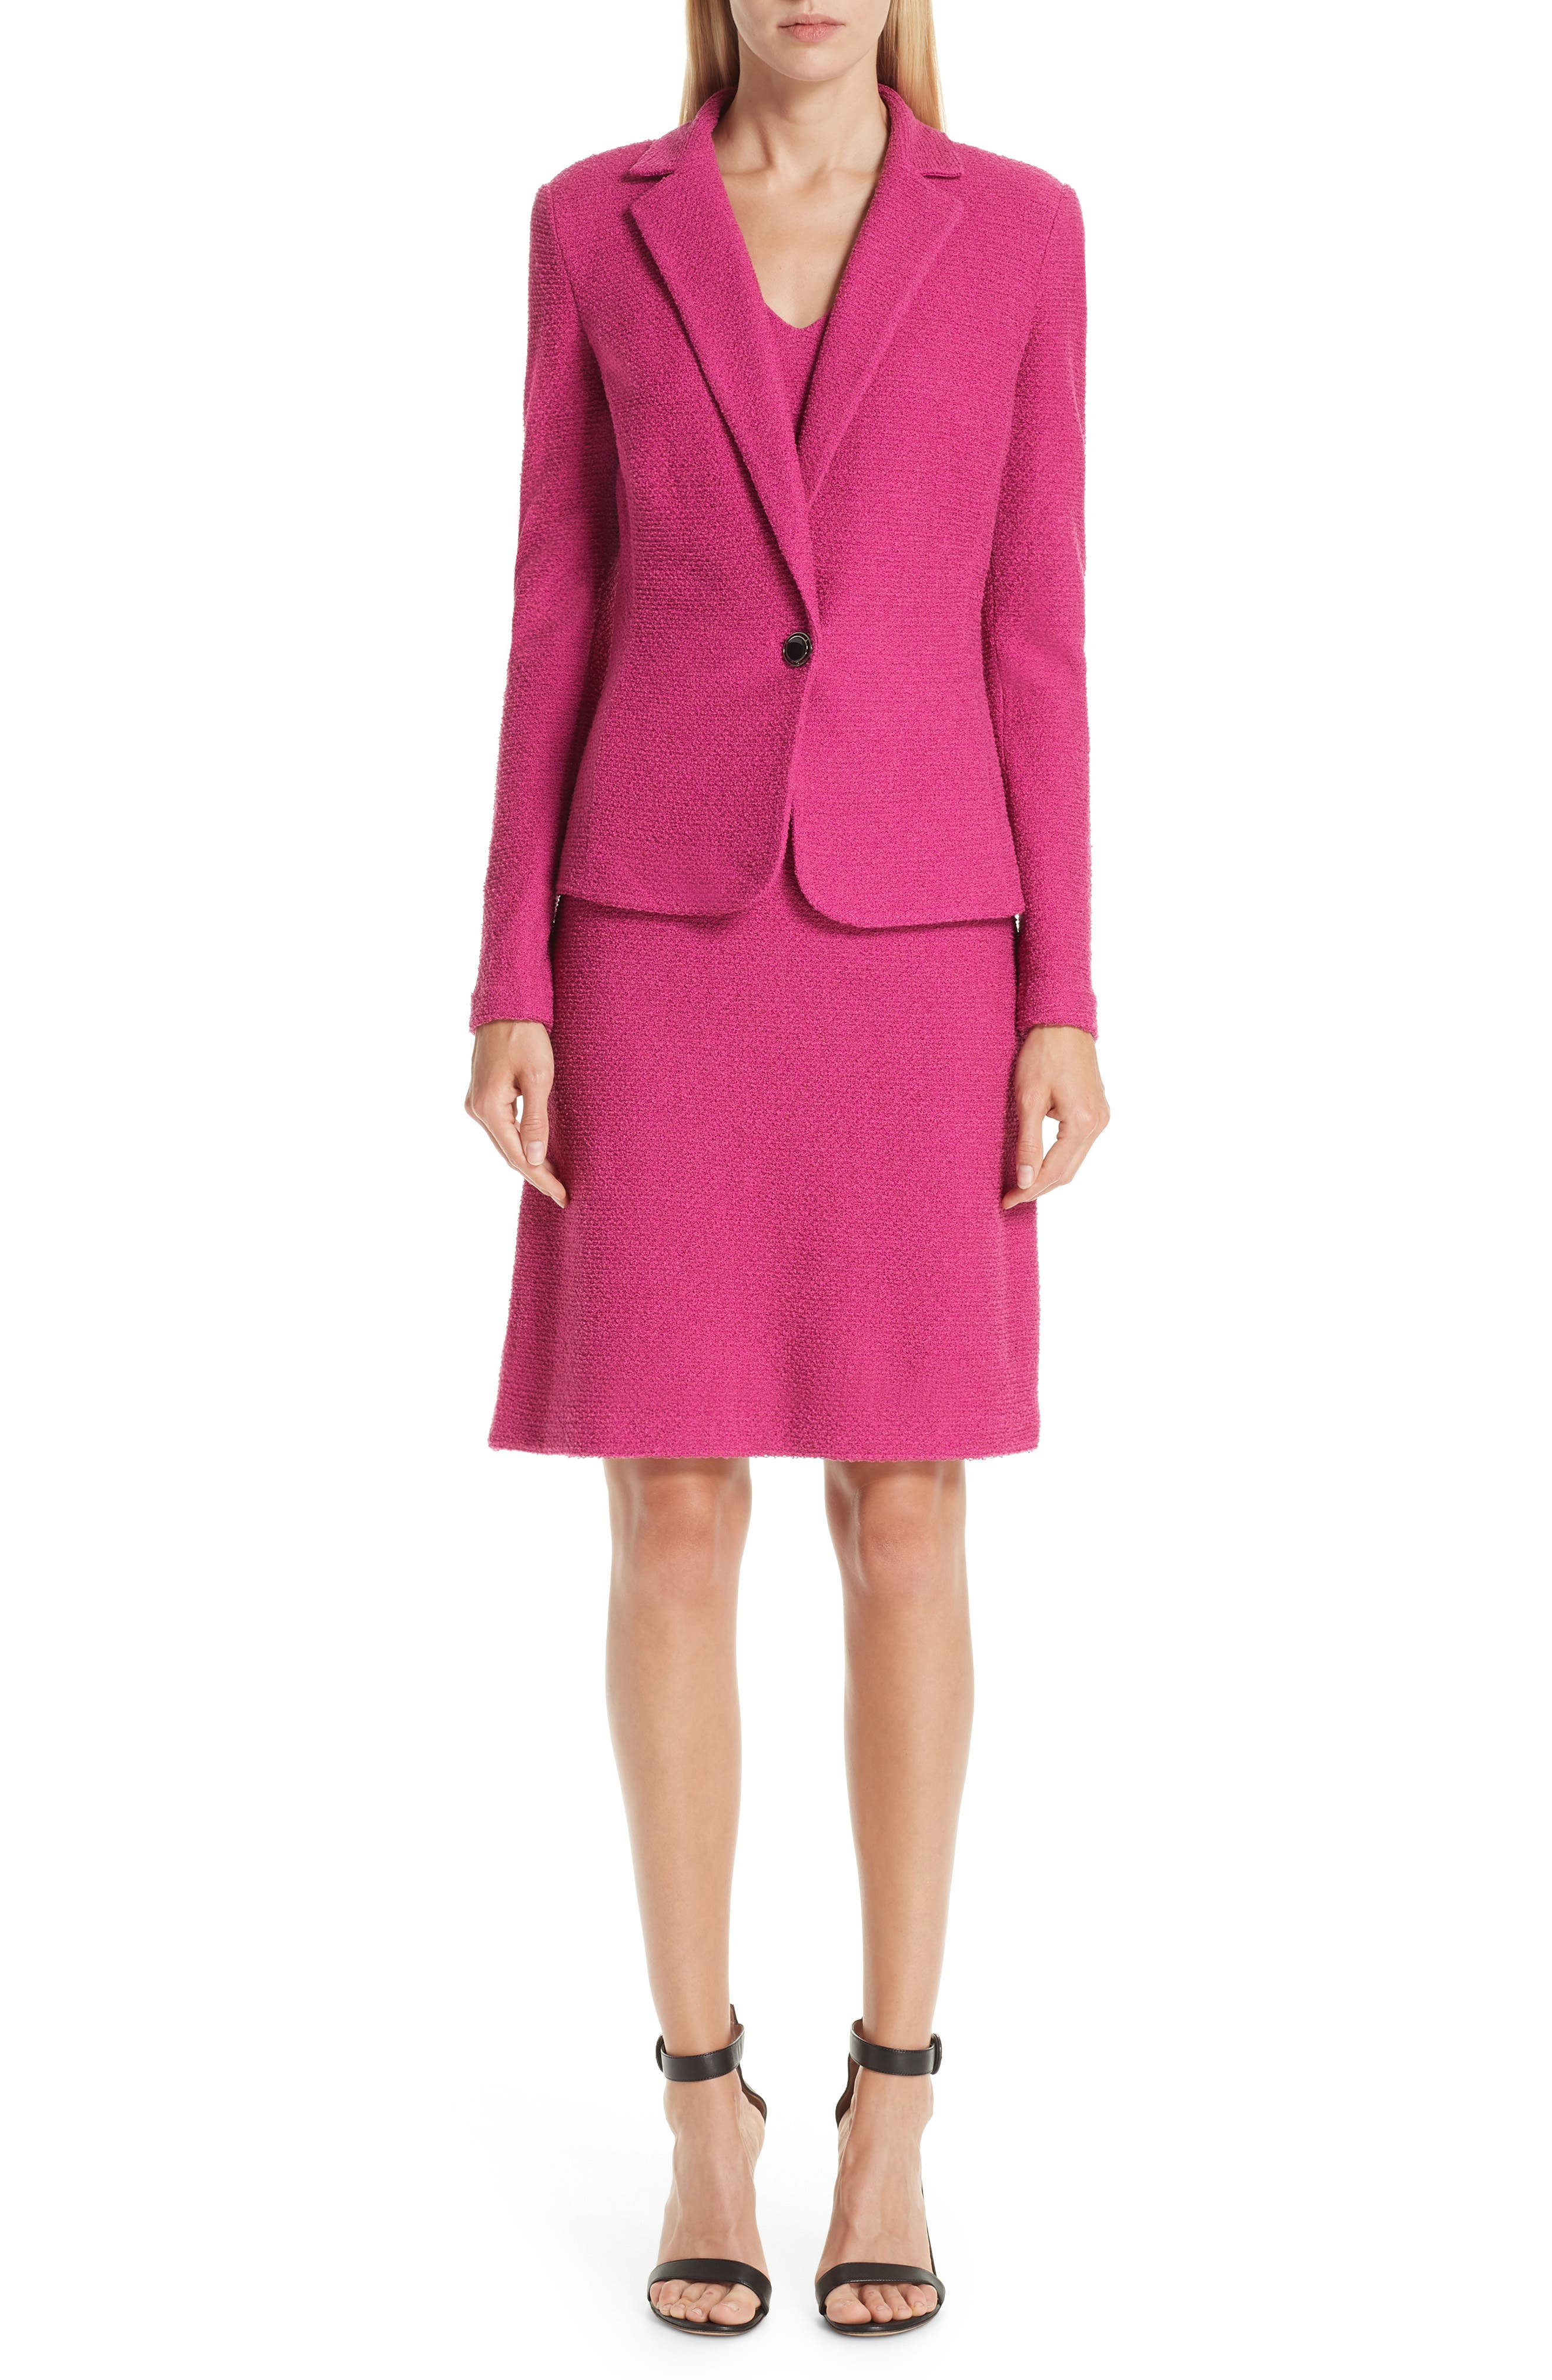 ST. JOHN COLLECTION, Refined Knit Jacket, Alternate thumbnail 9, color, CAMELLIA